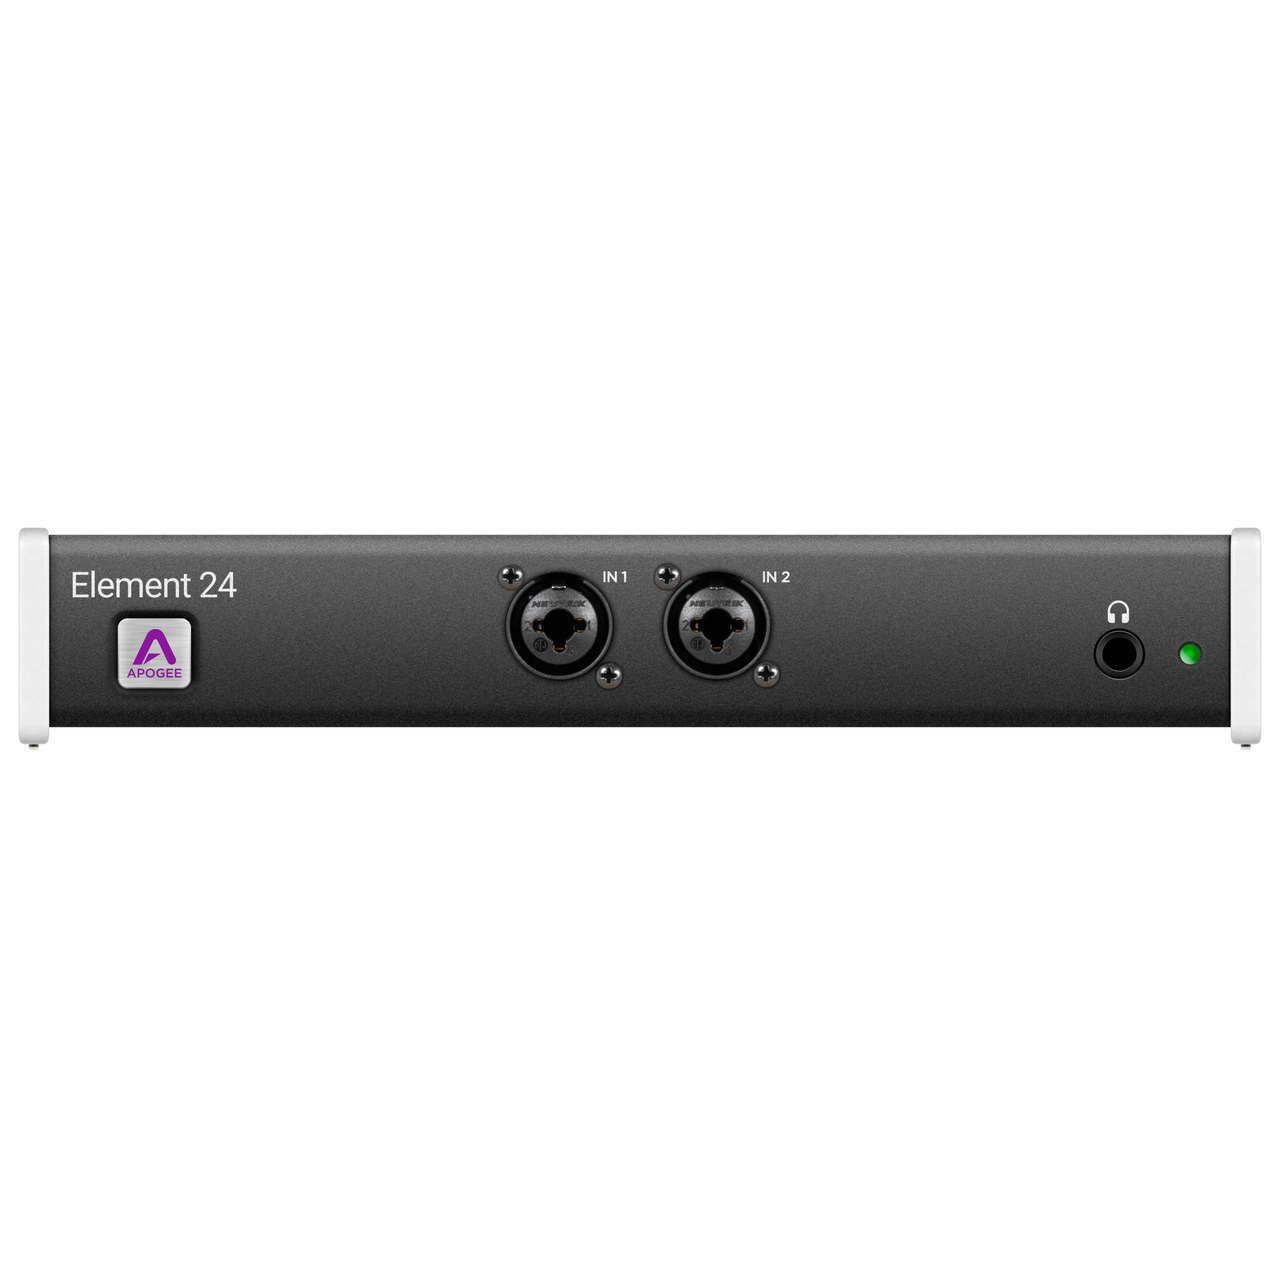 Apogee Element 24 (10x12 Thunderbolt Audio Interface for Mac)